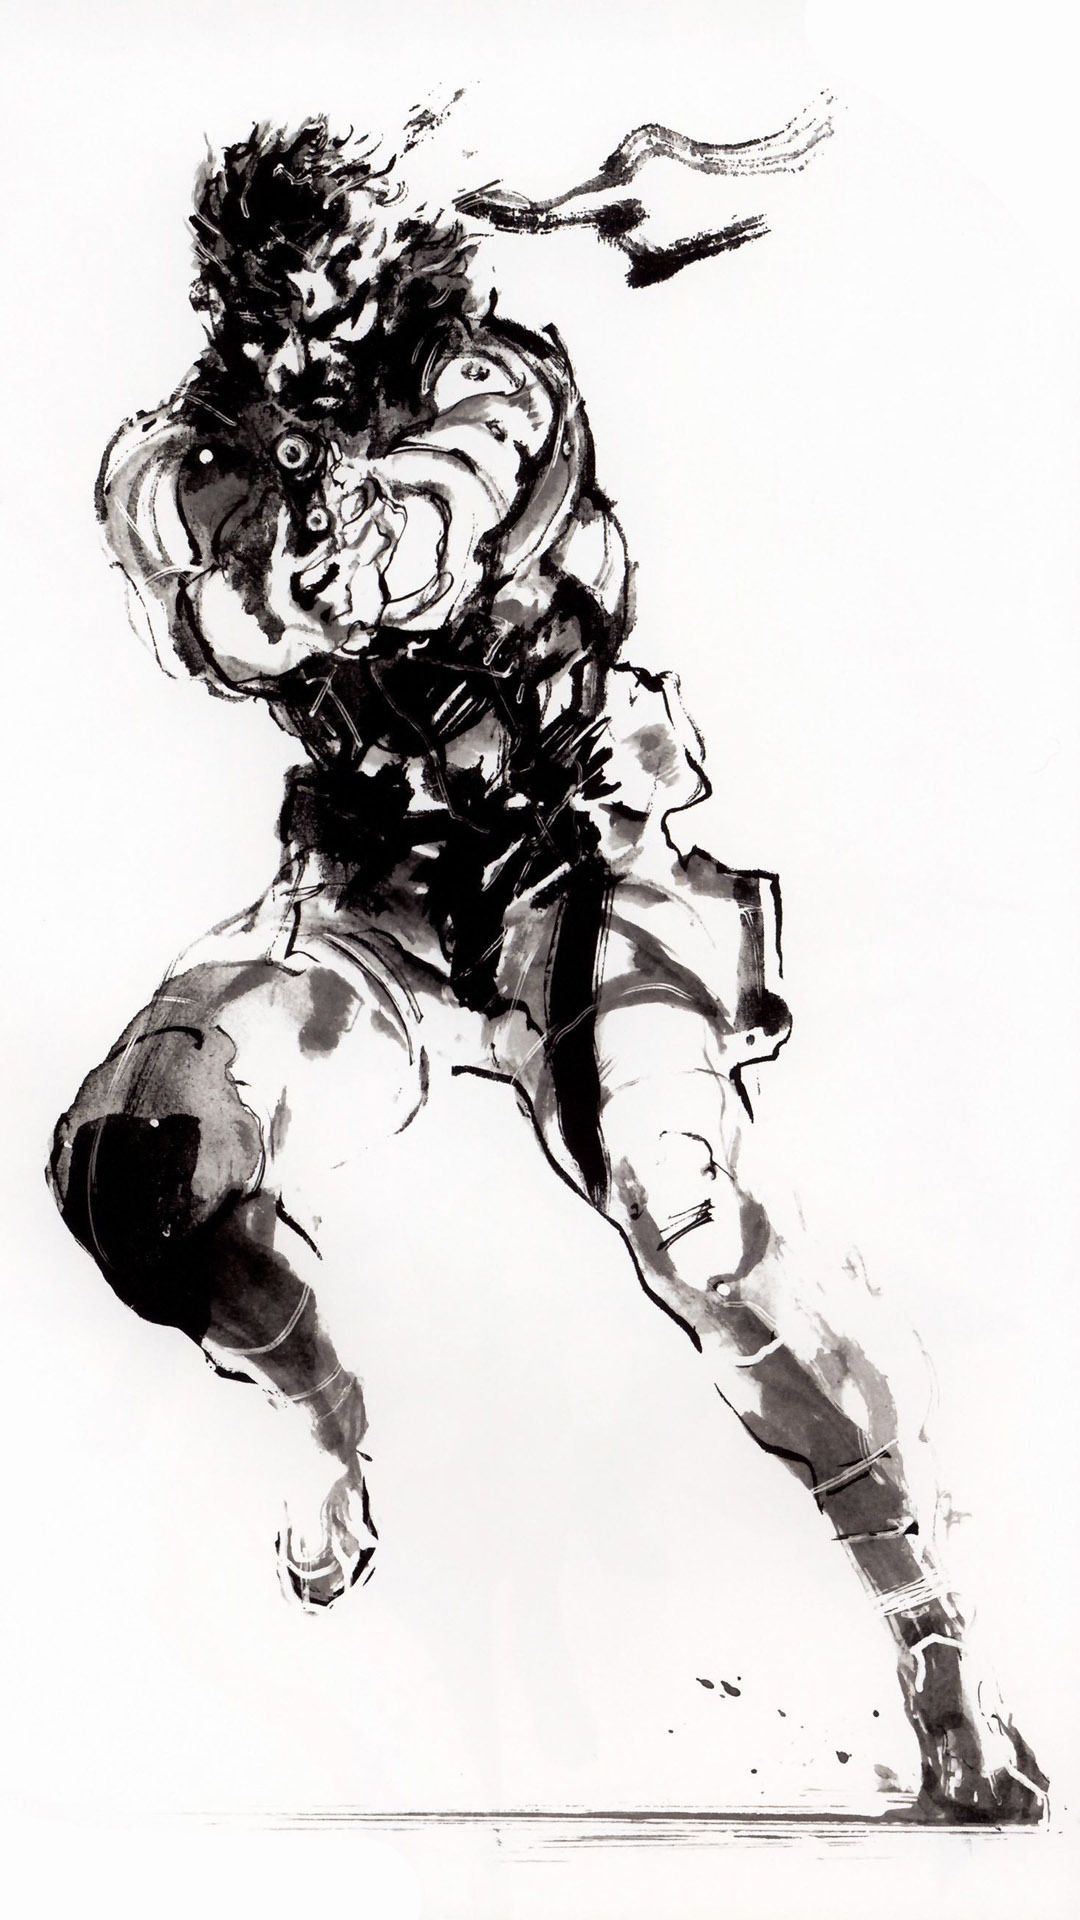 Is there any known official art of Old Snake and Venom